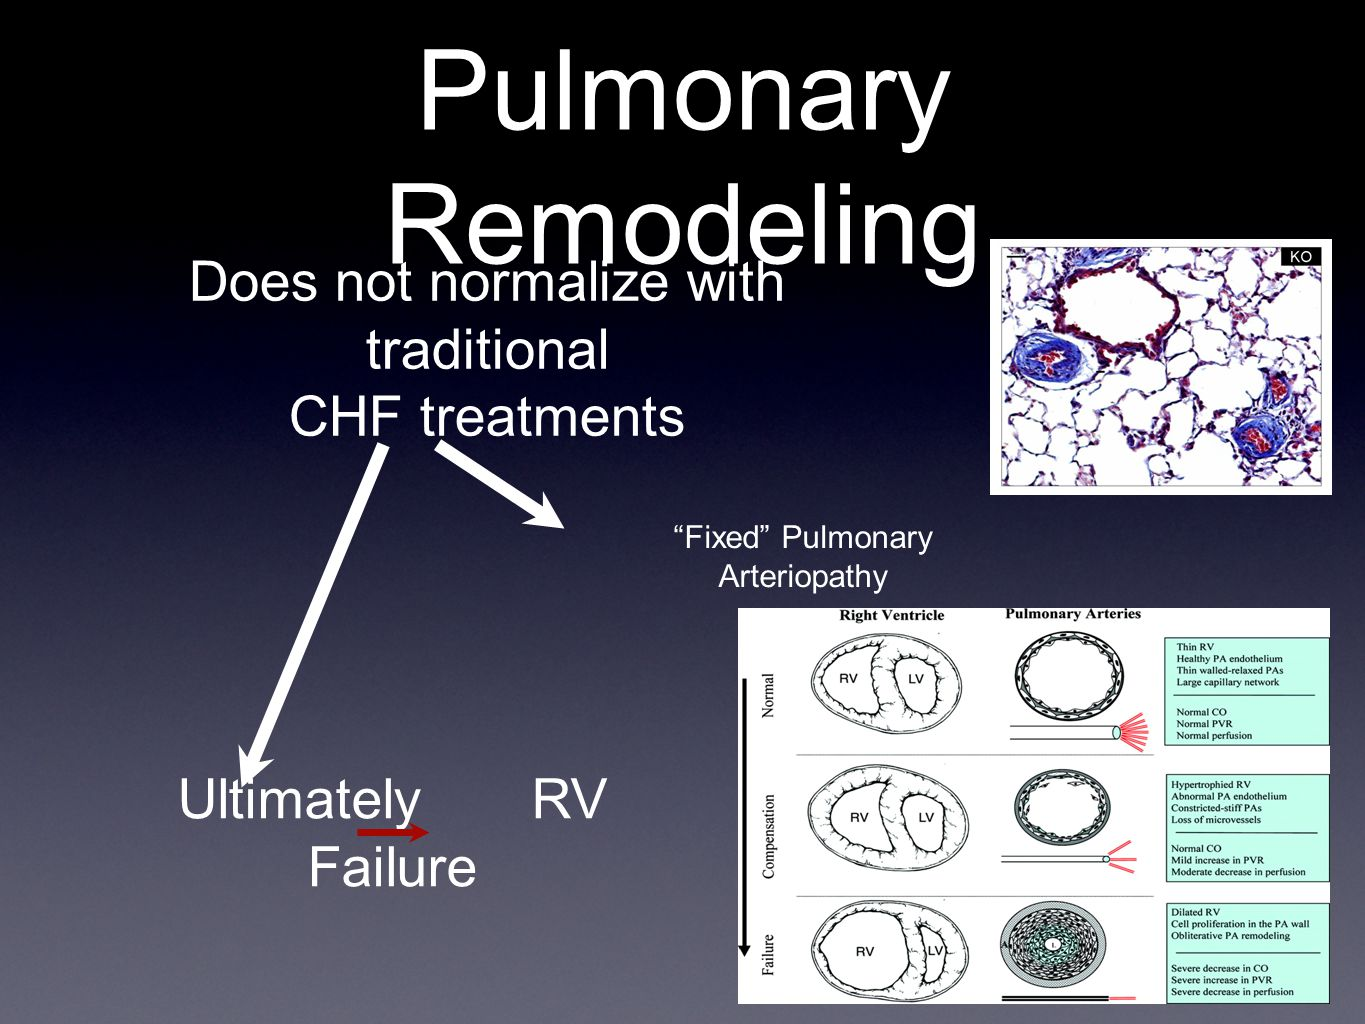 Pulmonary Remodeling Does not normalize with traditional